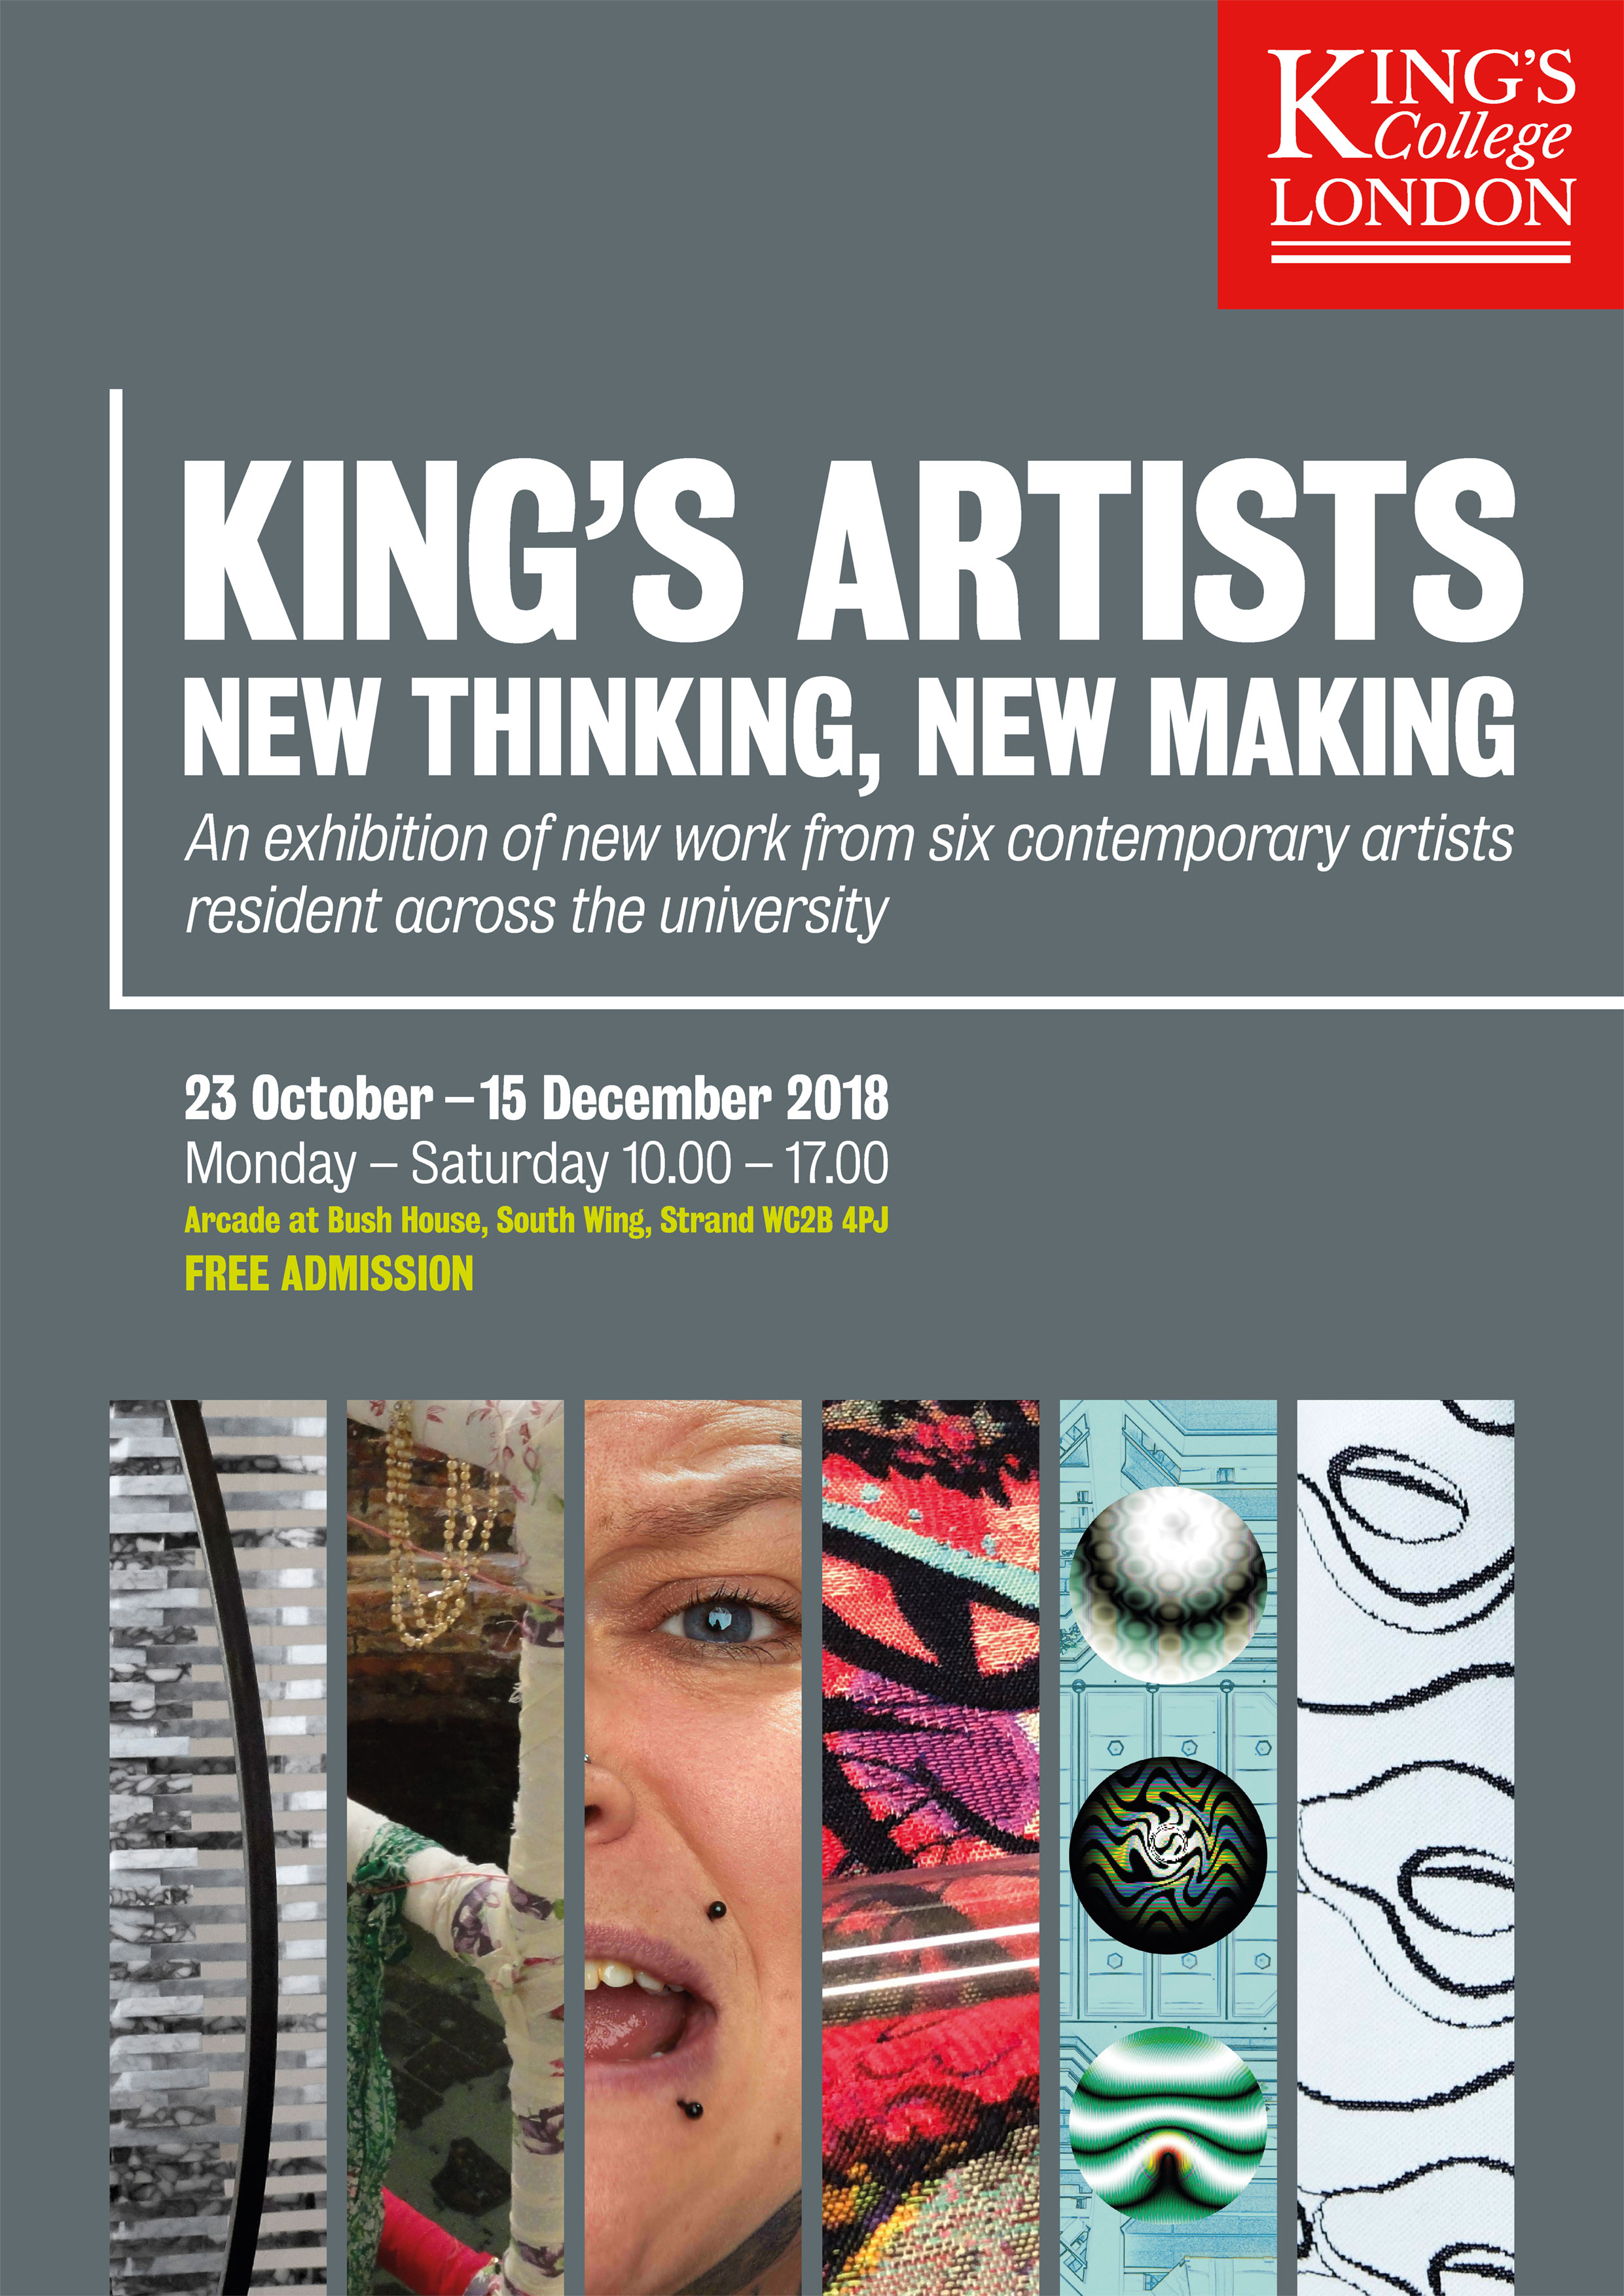 K_C_King'sArtists_A2Poster_proof3_AW.jpg